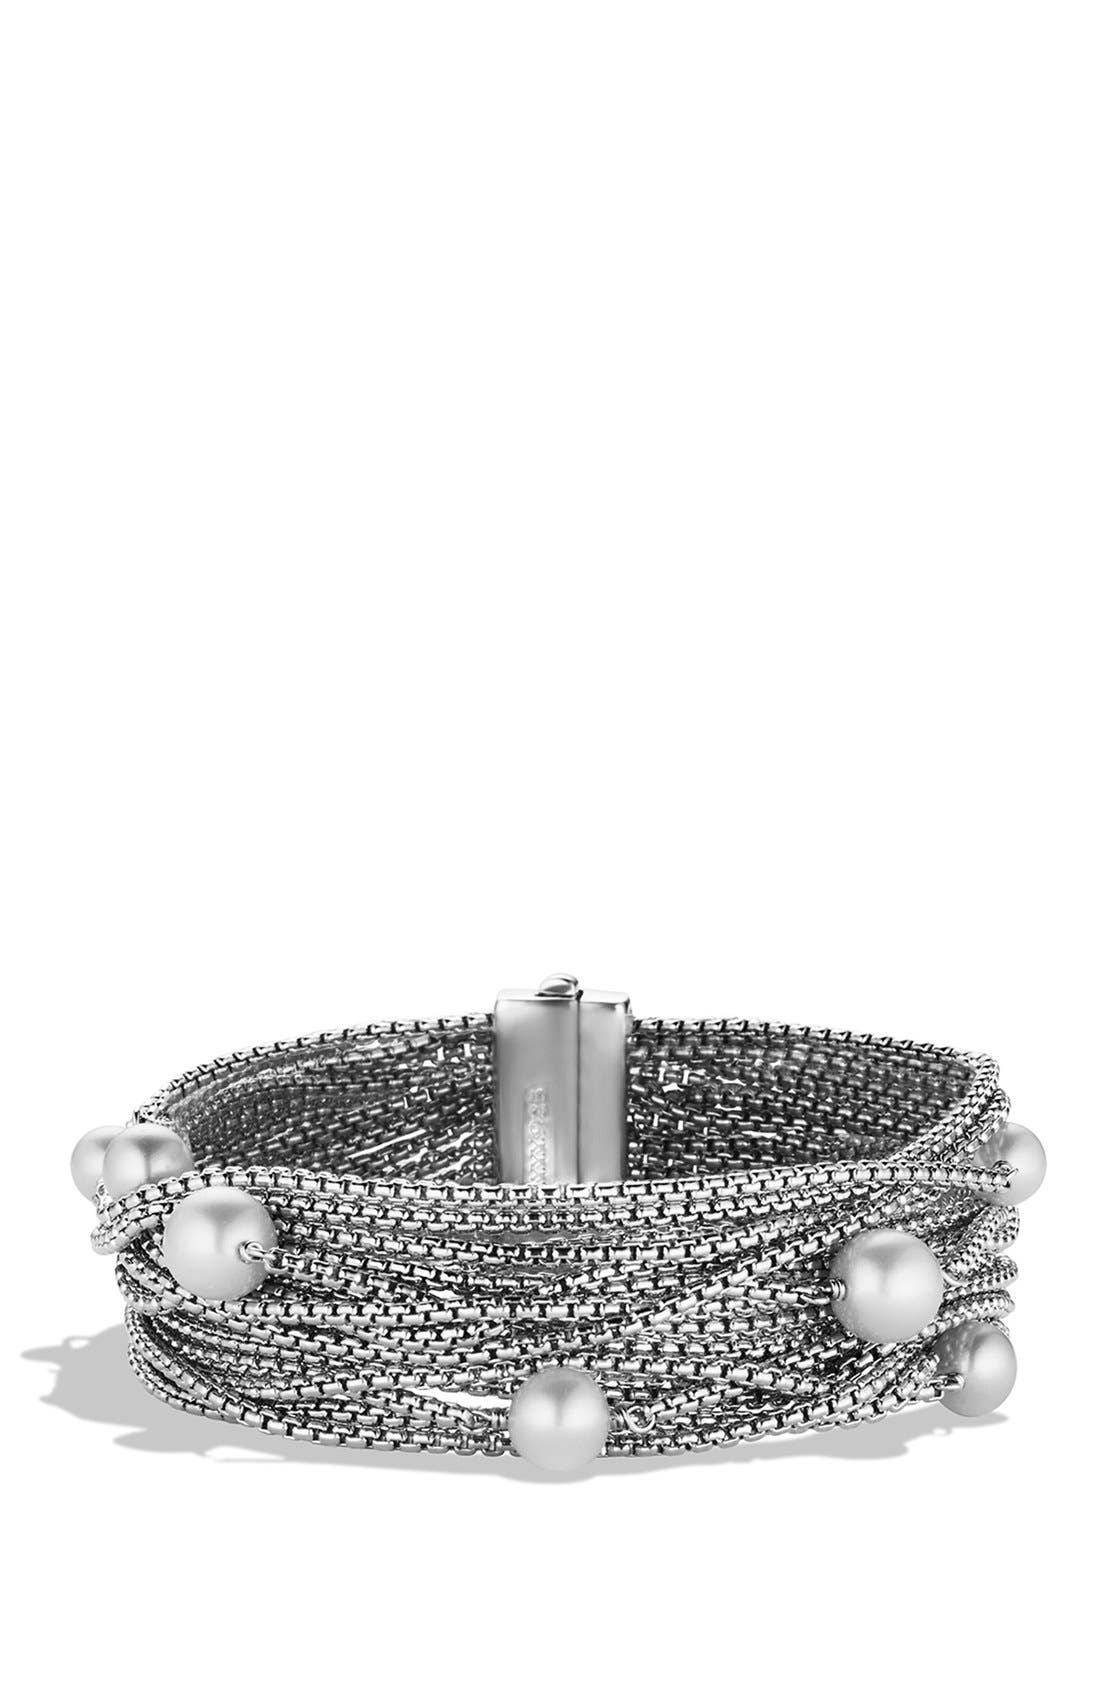 Main Image - David Yurman Sixteen-Row Chain Bracelet with Pearls